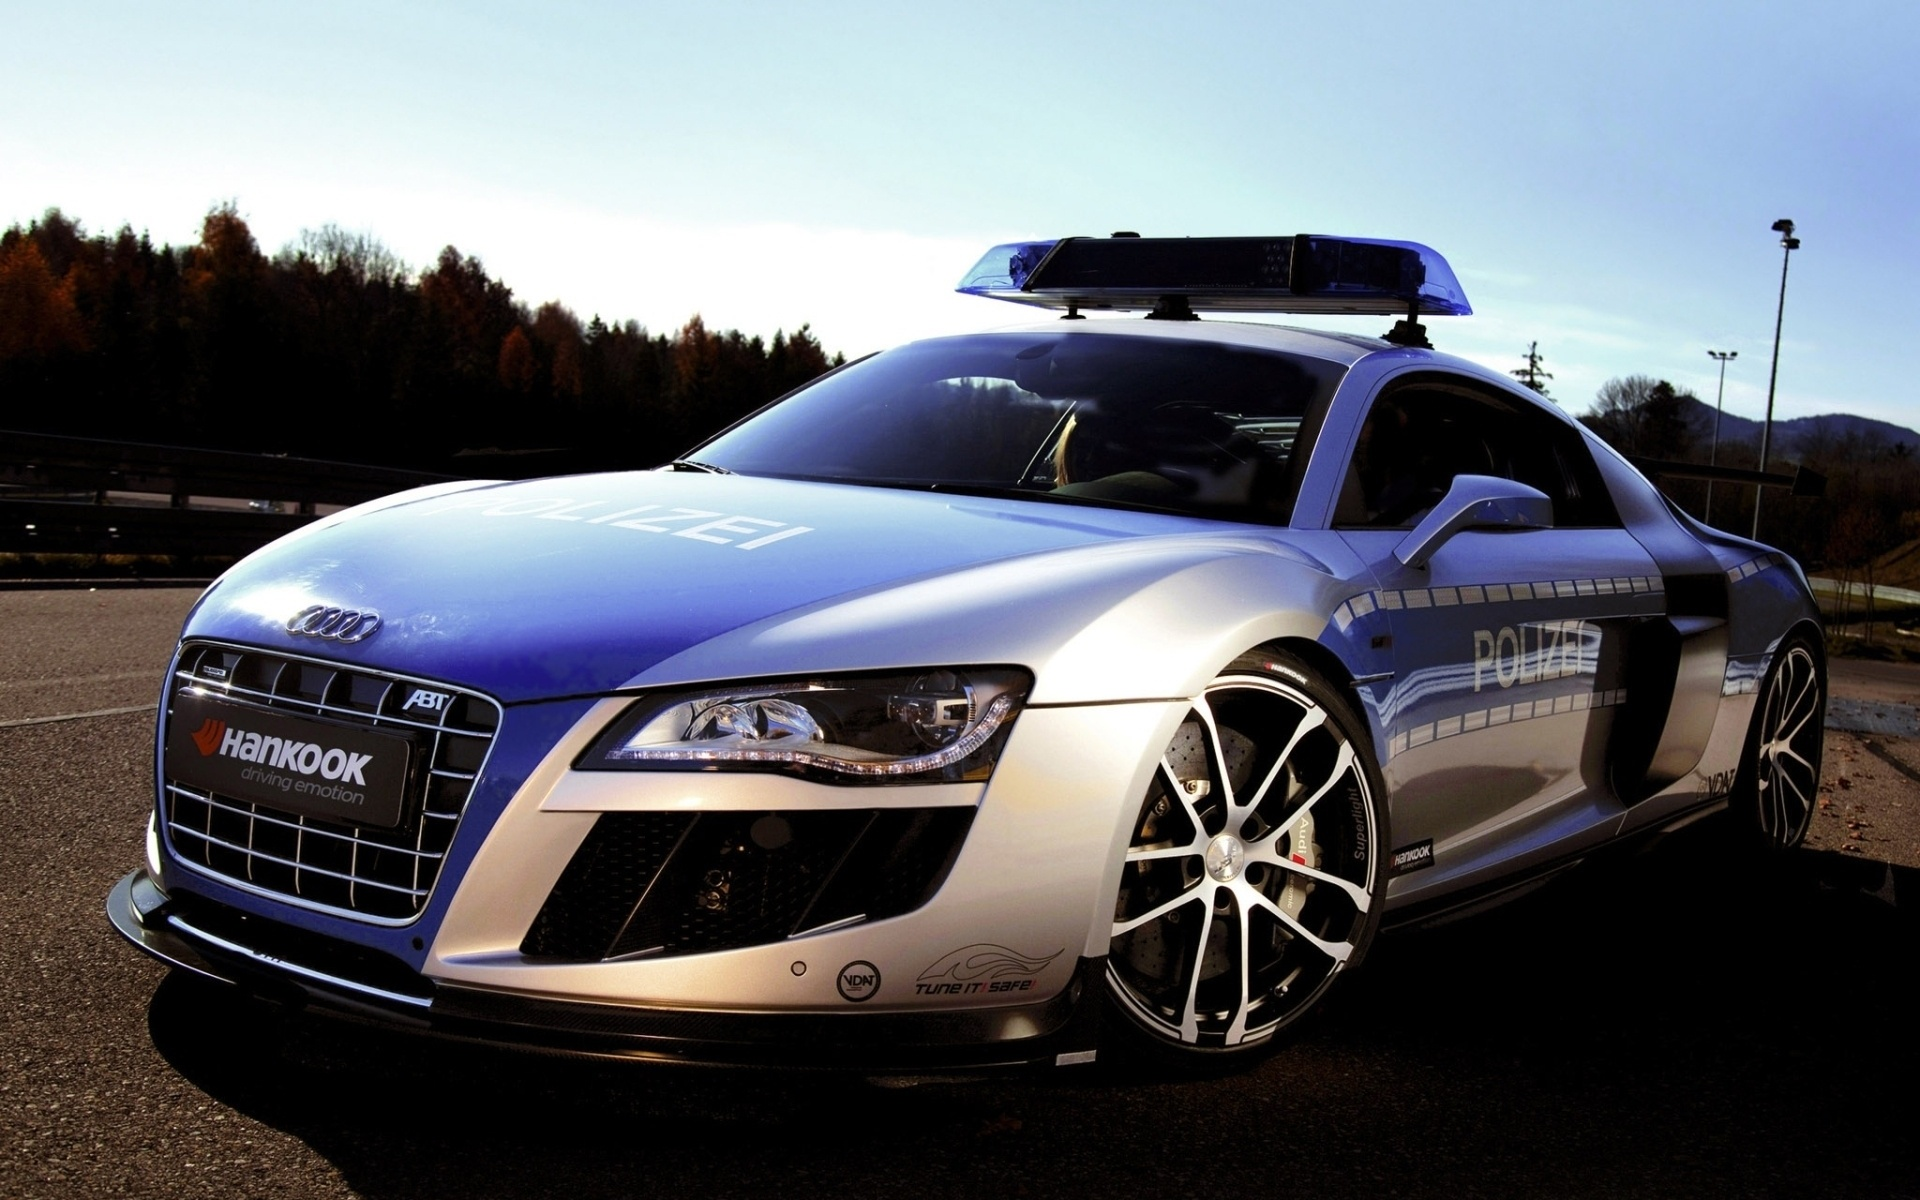 ... Police Car Wallpaper Free Wallpaper Pics Pictures Hd for Desktop